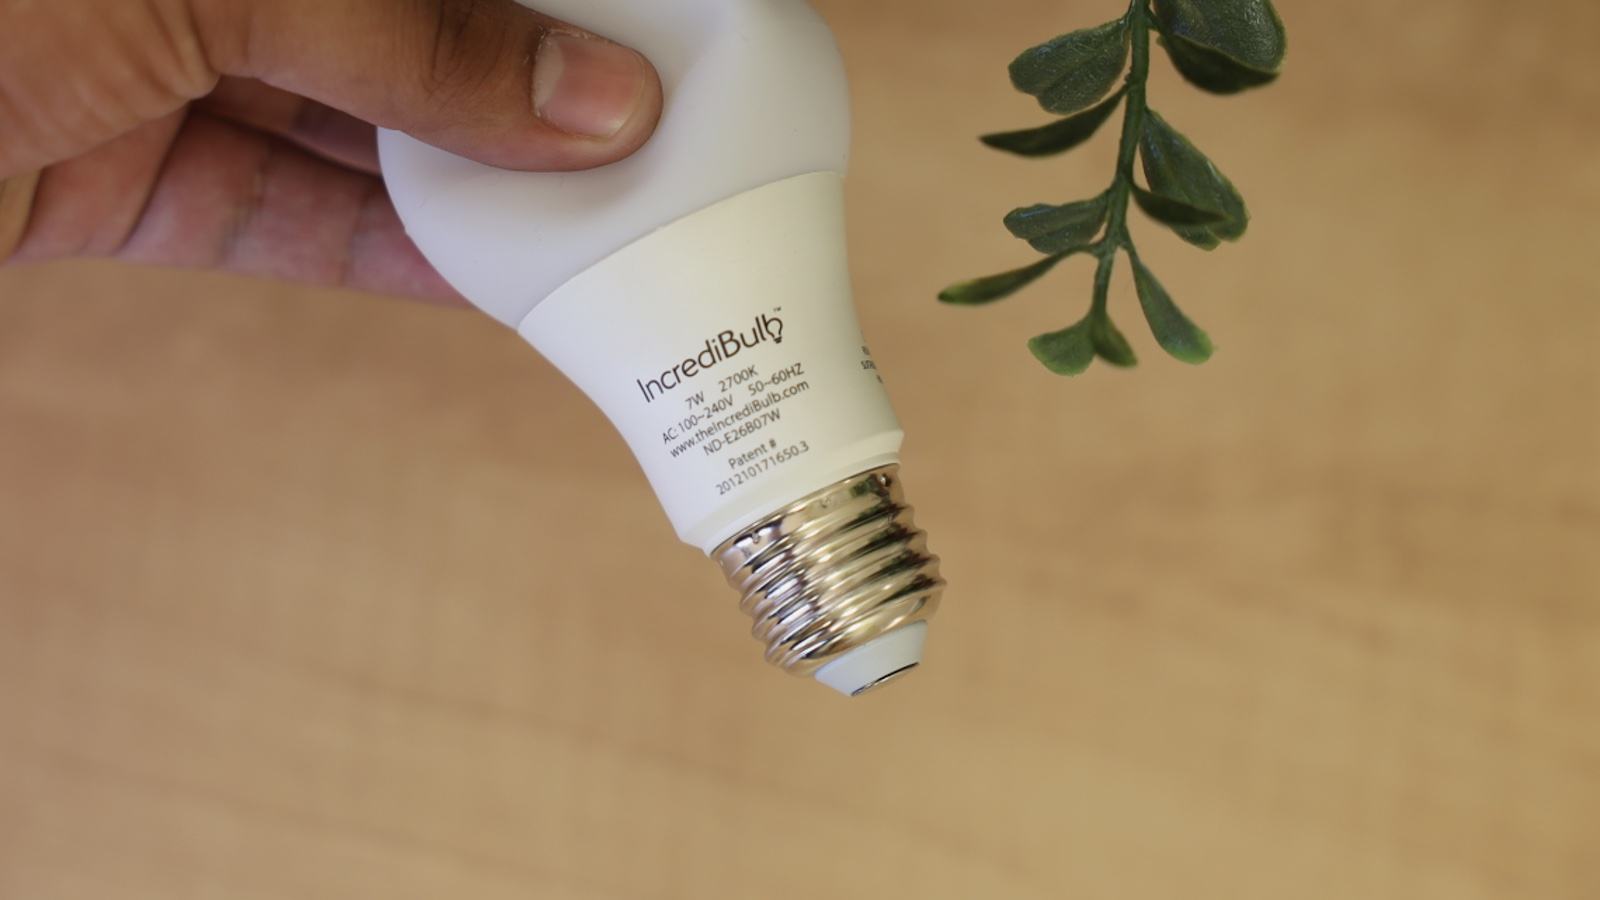 This flexible LED lightbulb is bright and won't break itself or your wallet